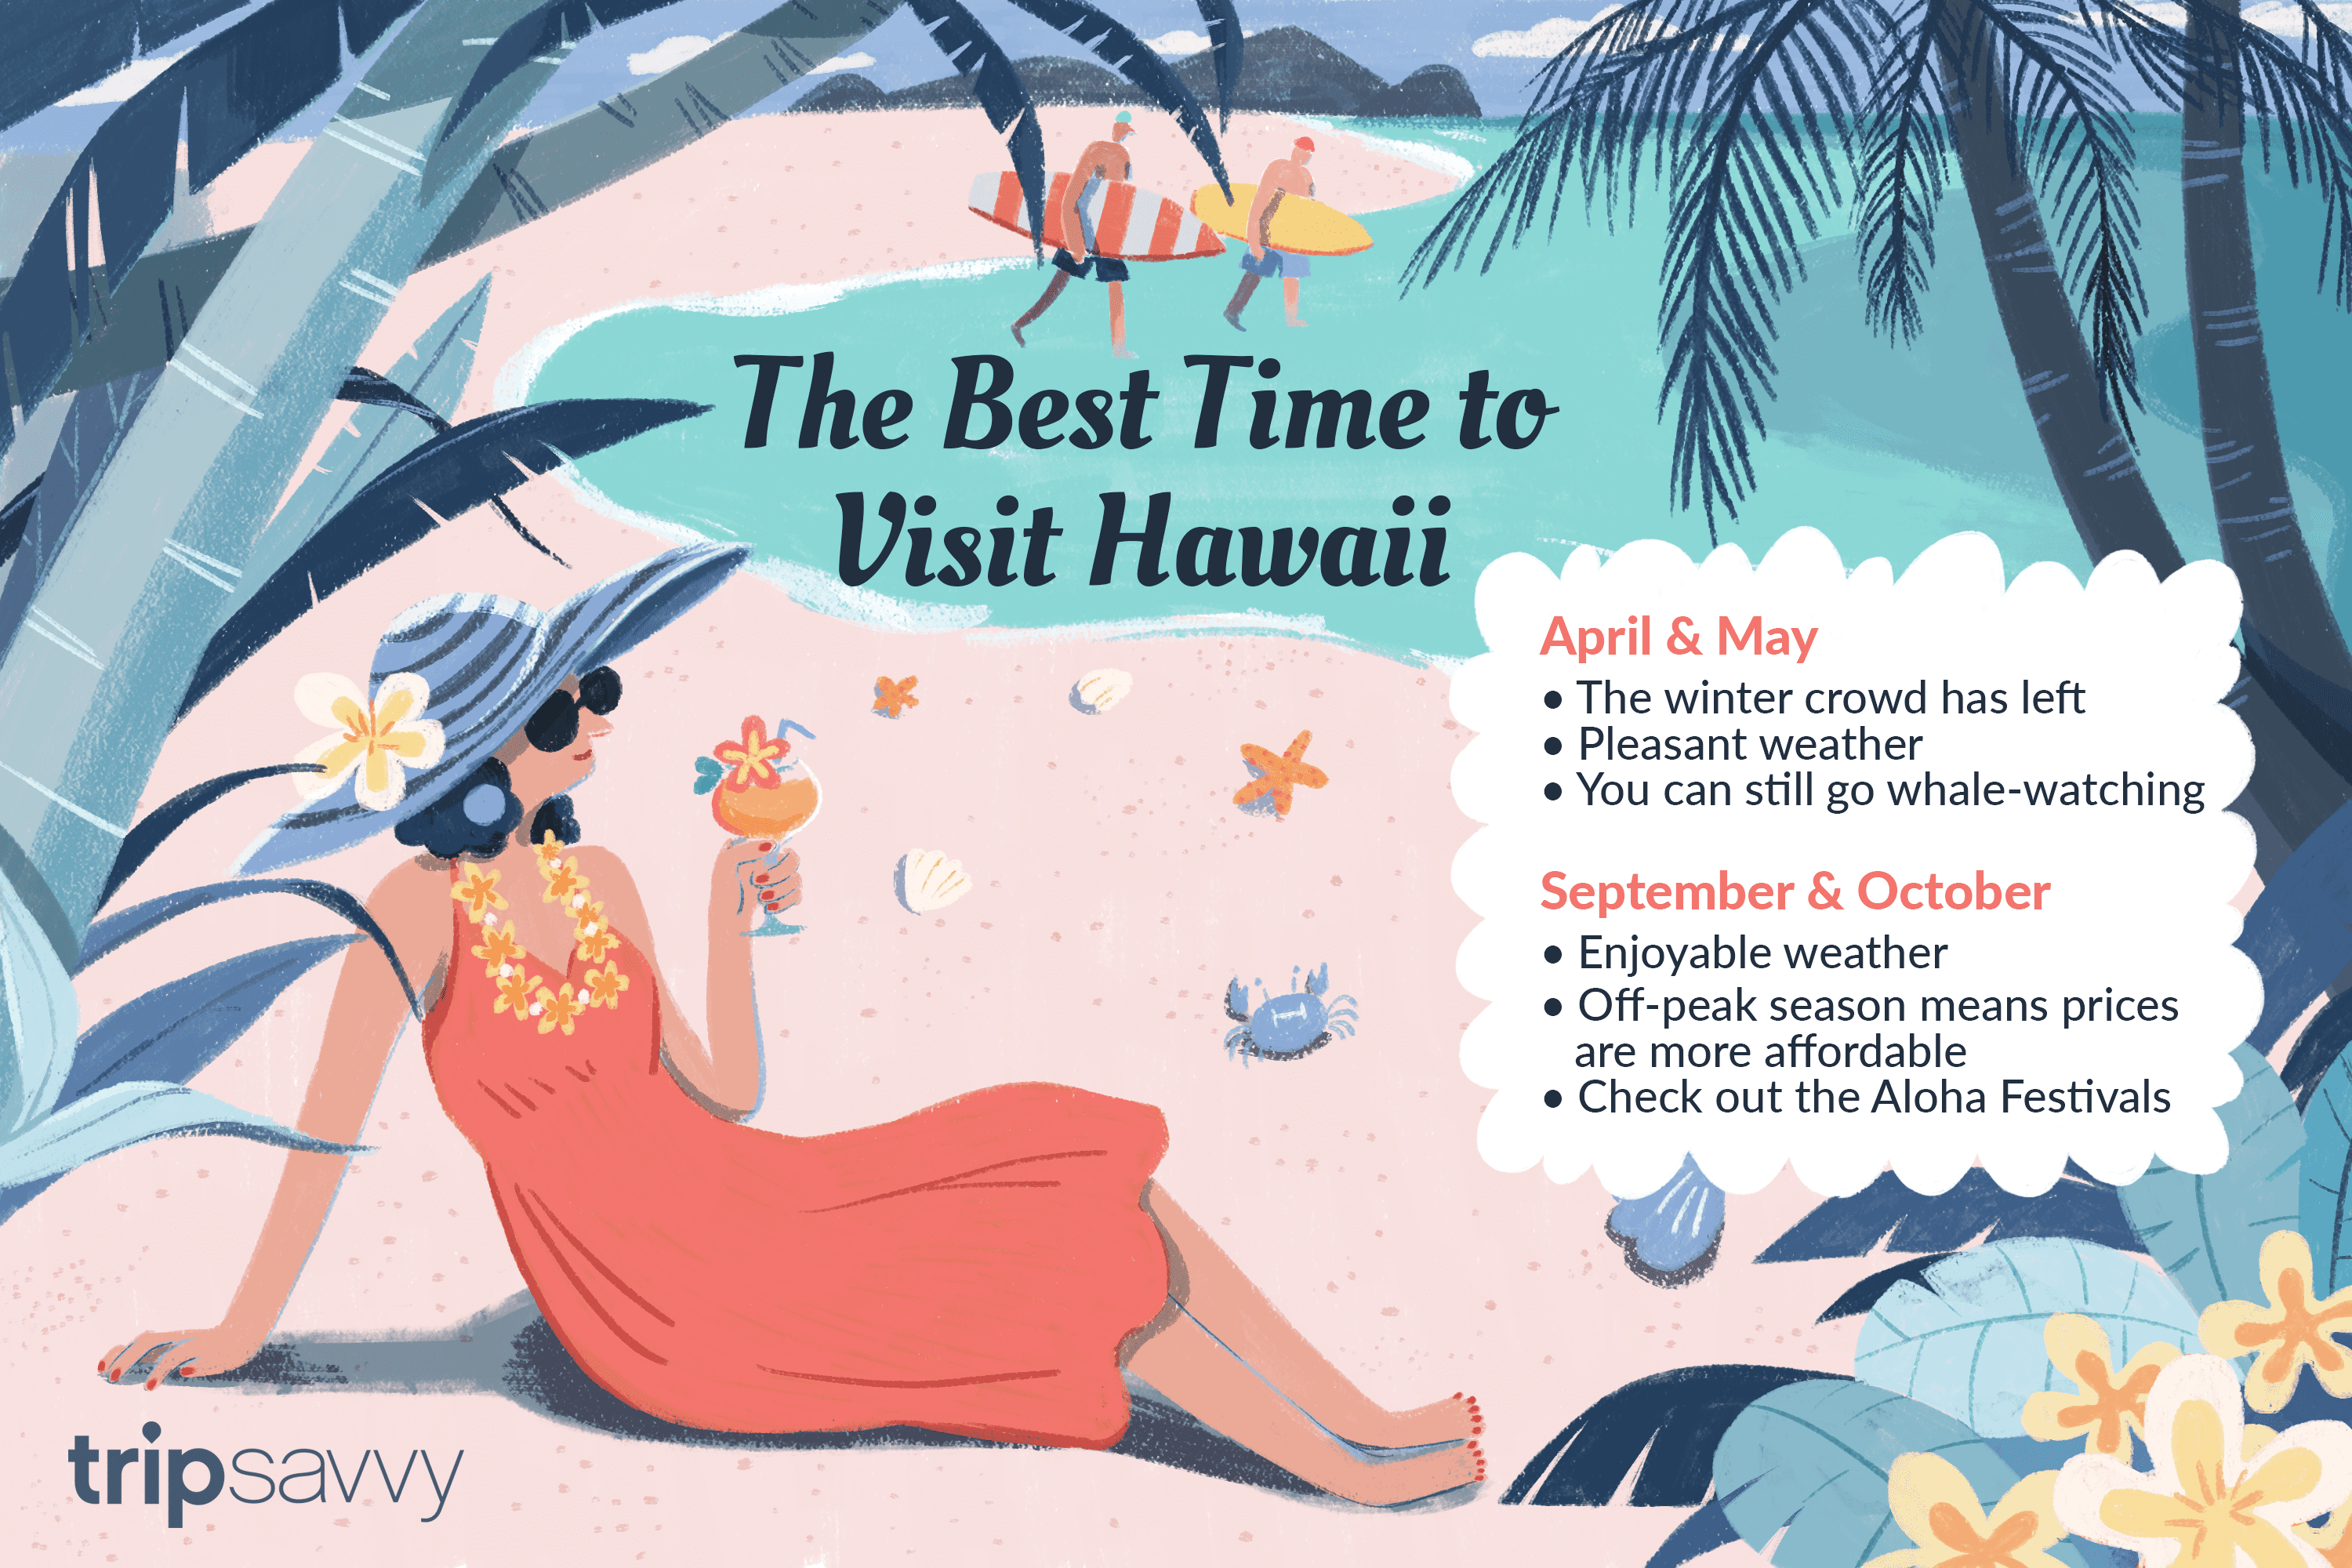 The Best Time to Visit Hawaii